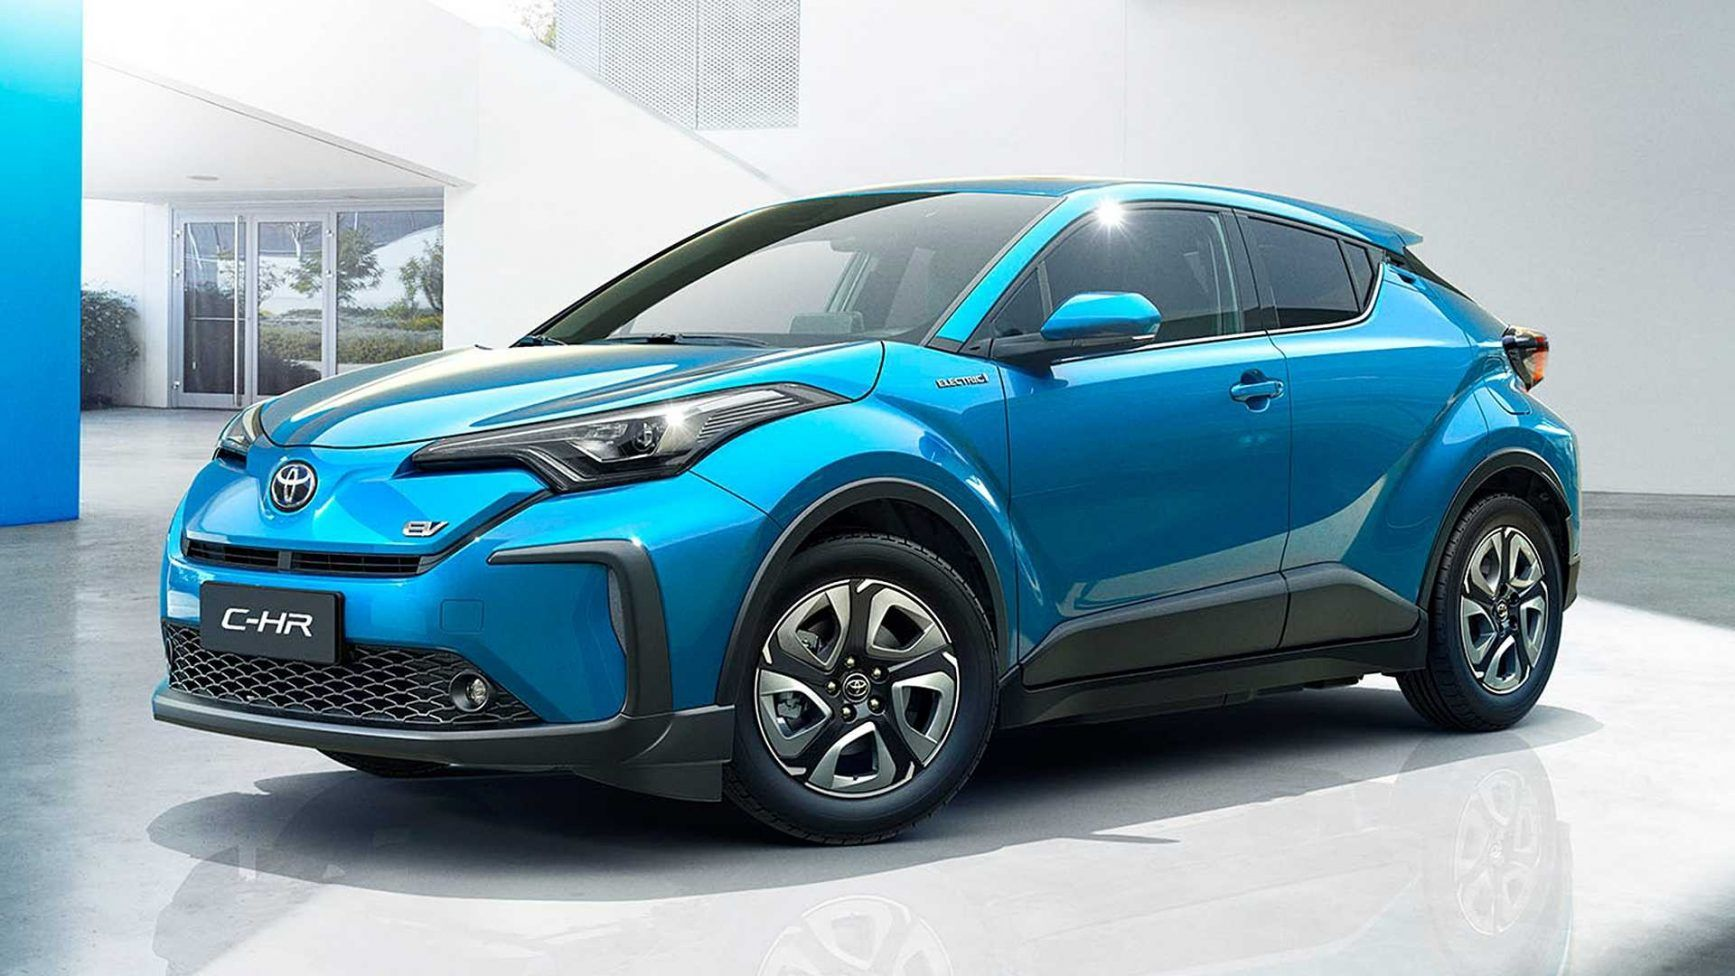 The new 2021 Toyota CHR should be a completely electric